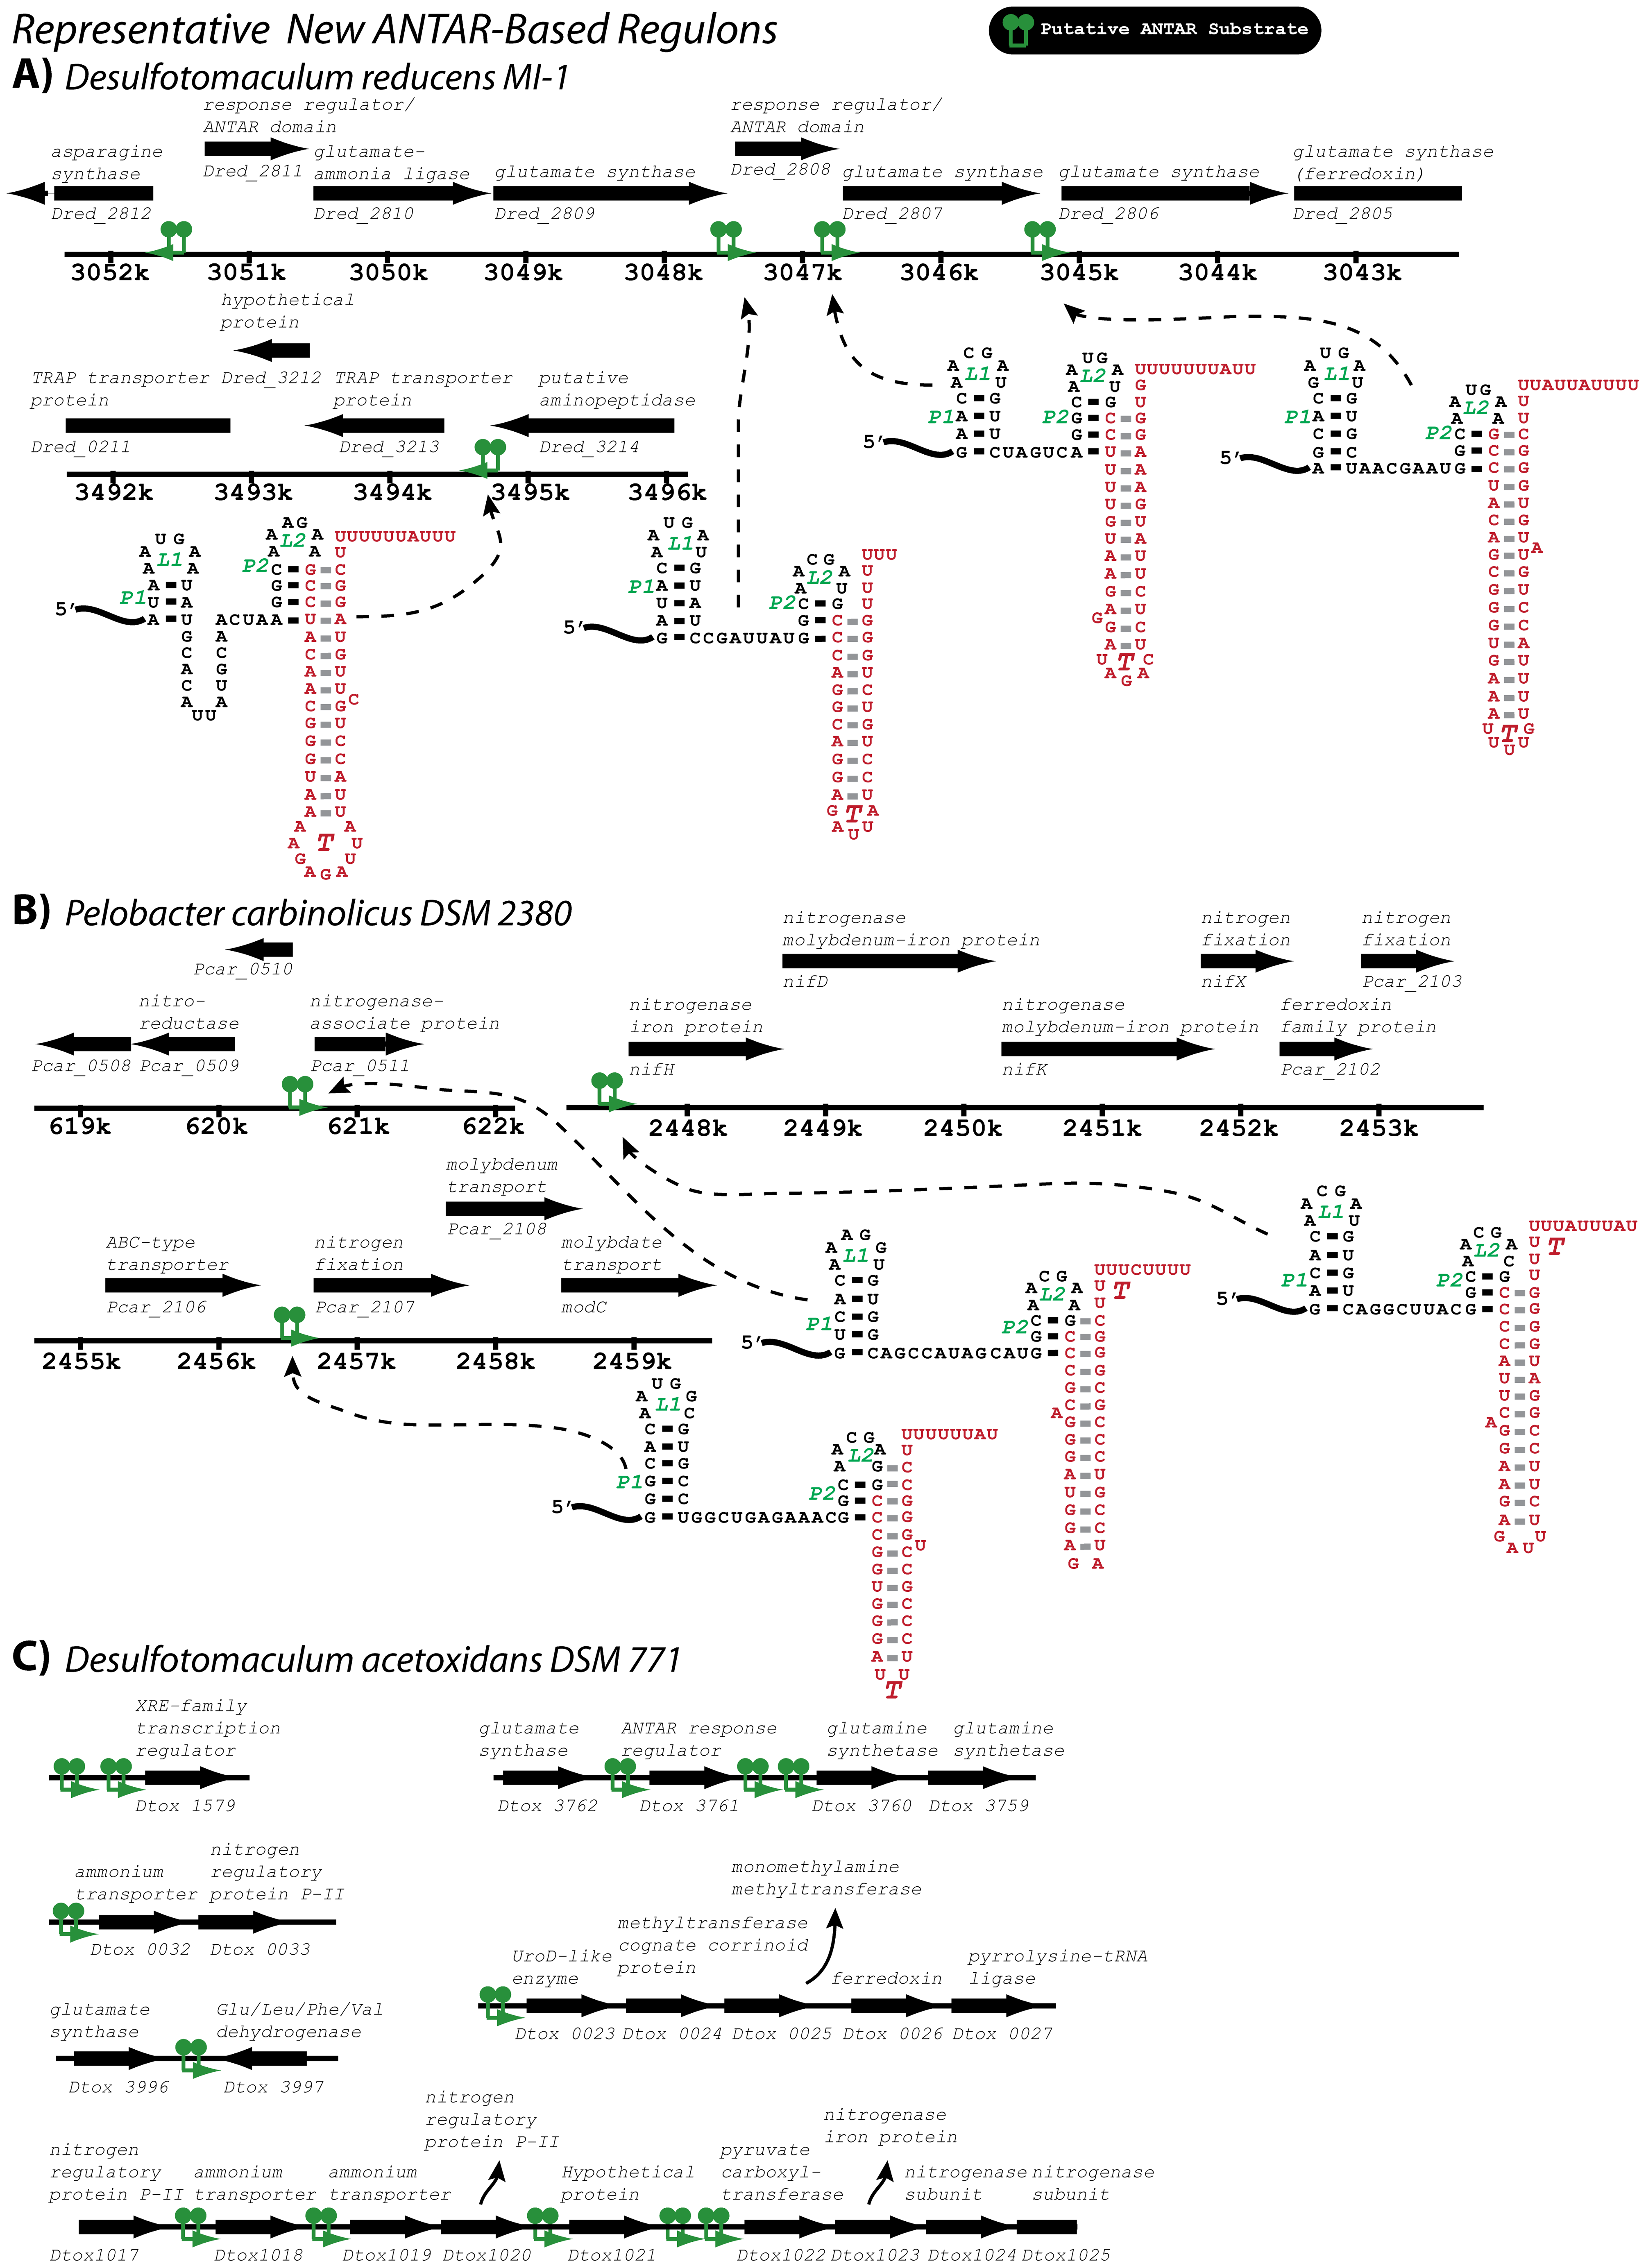 A few representative ANTAR-based regulons identified in this study.